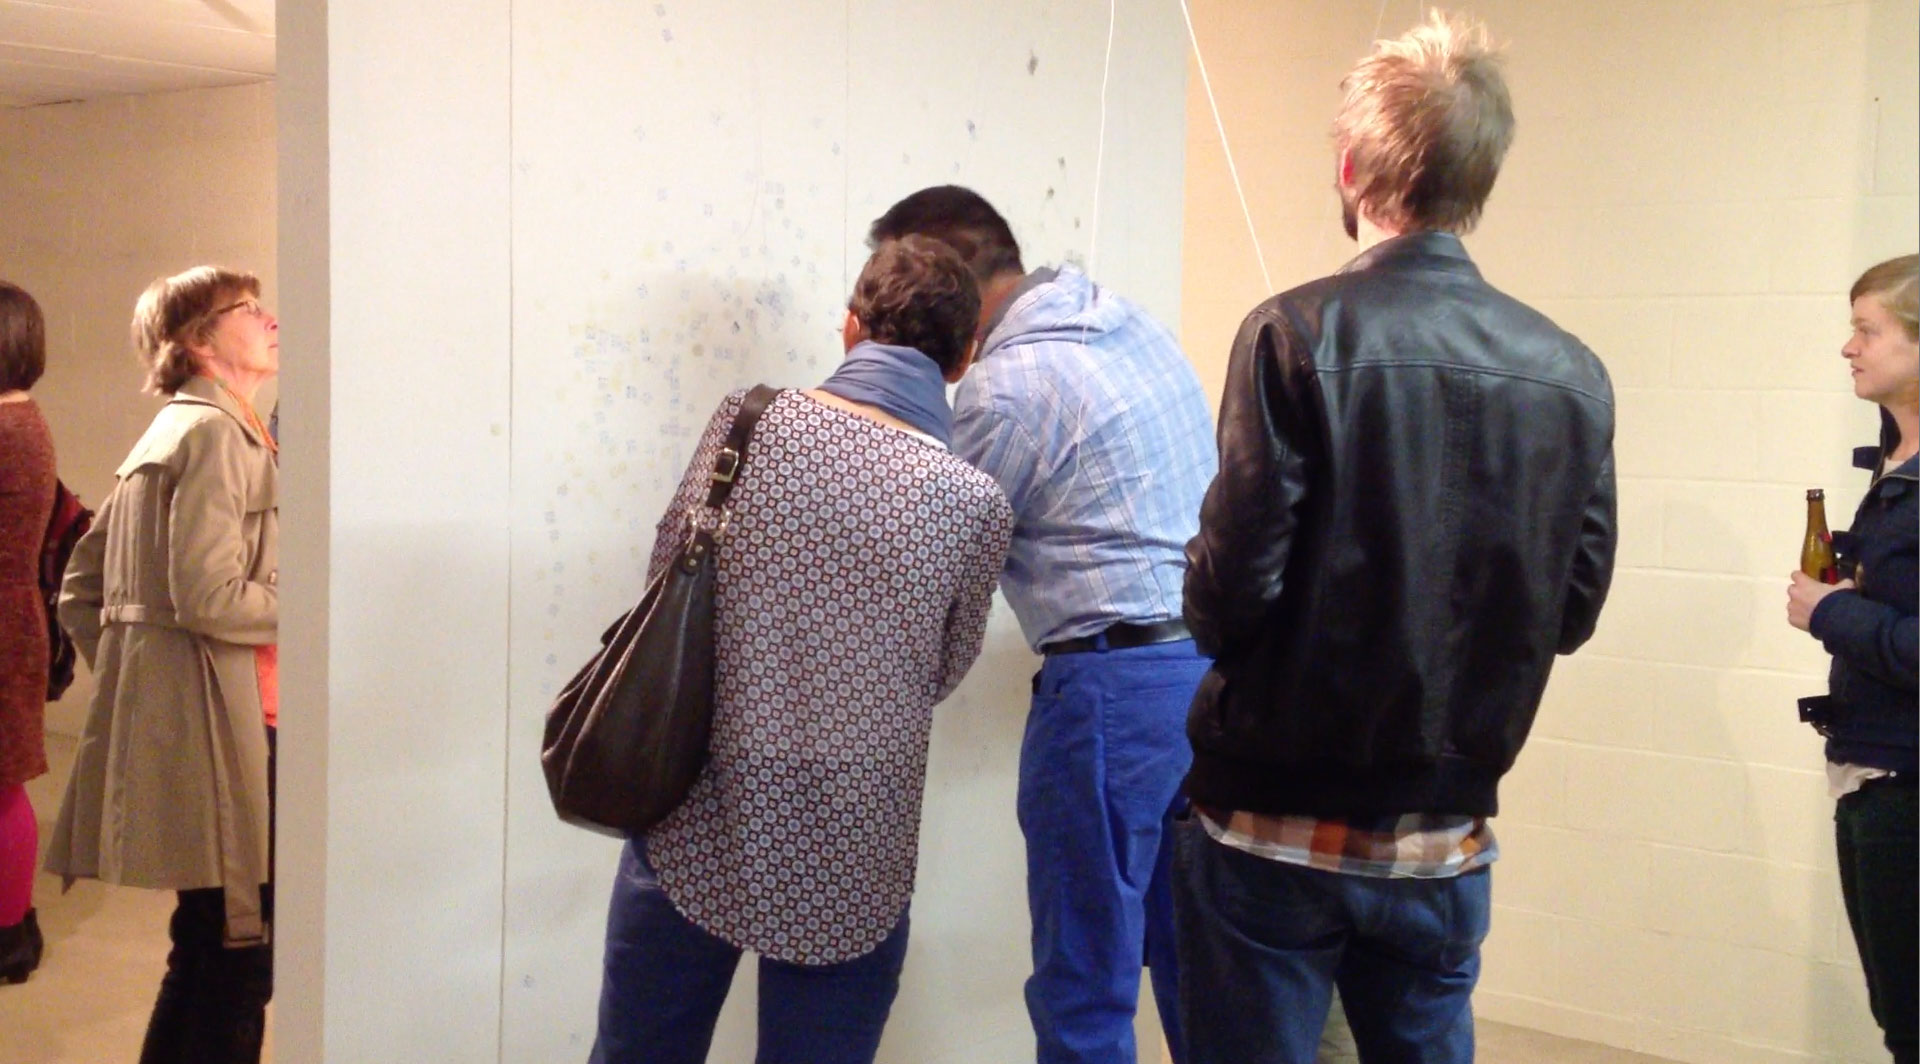 People at the opening of the exhibition in Ghent.